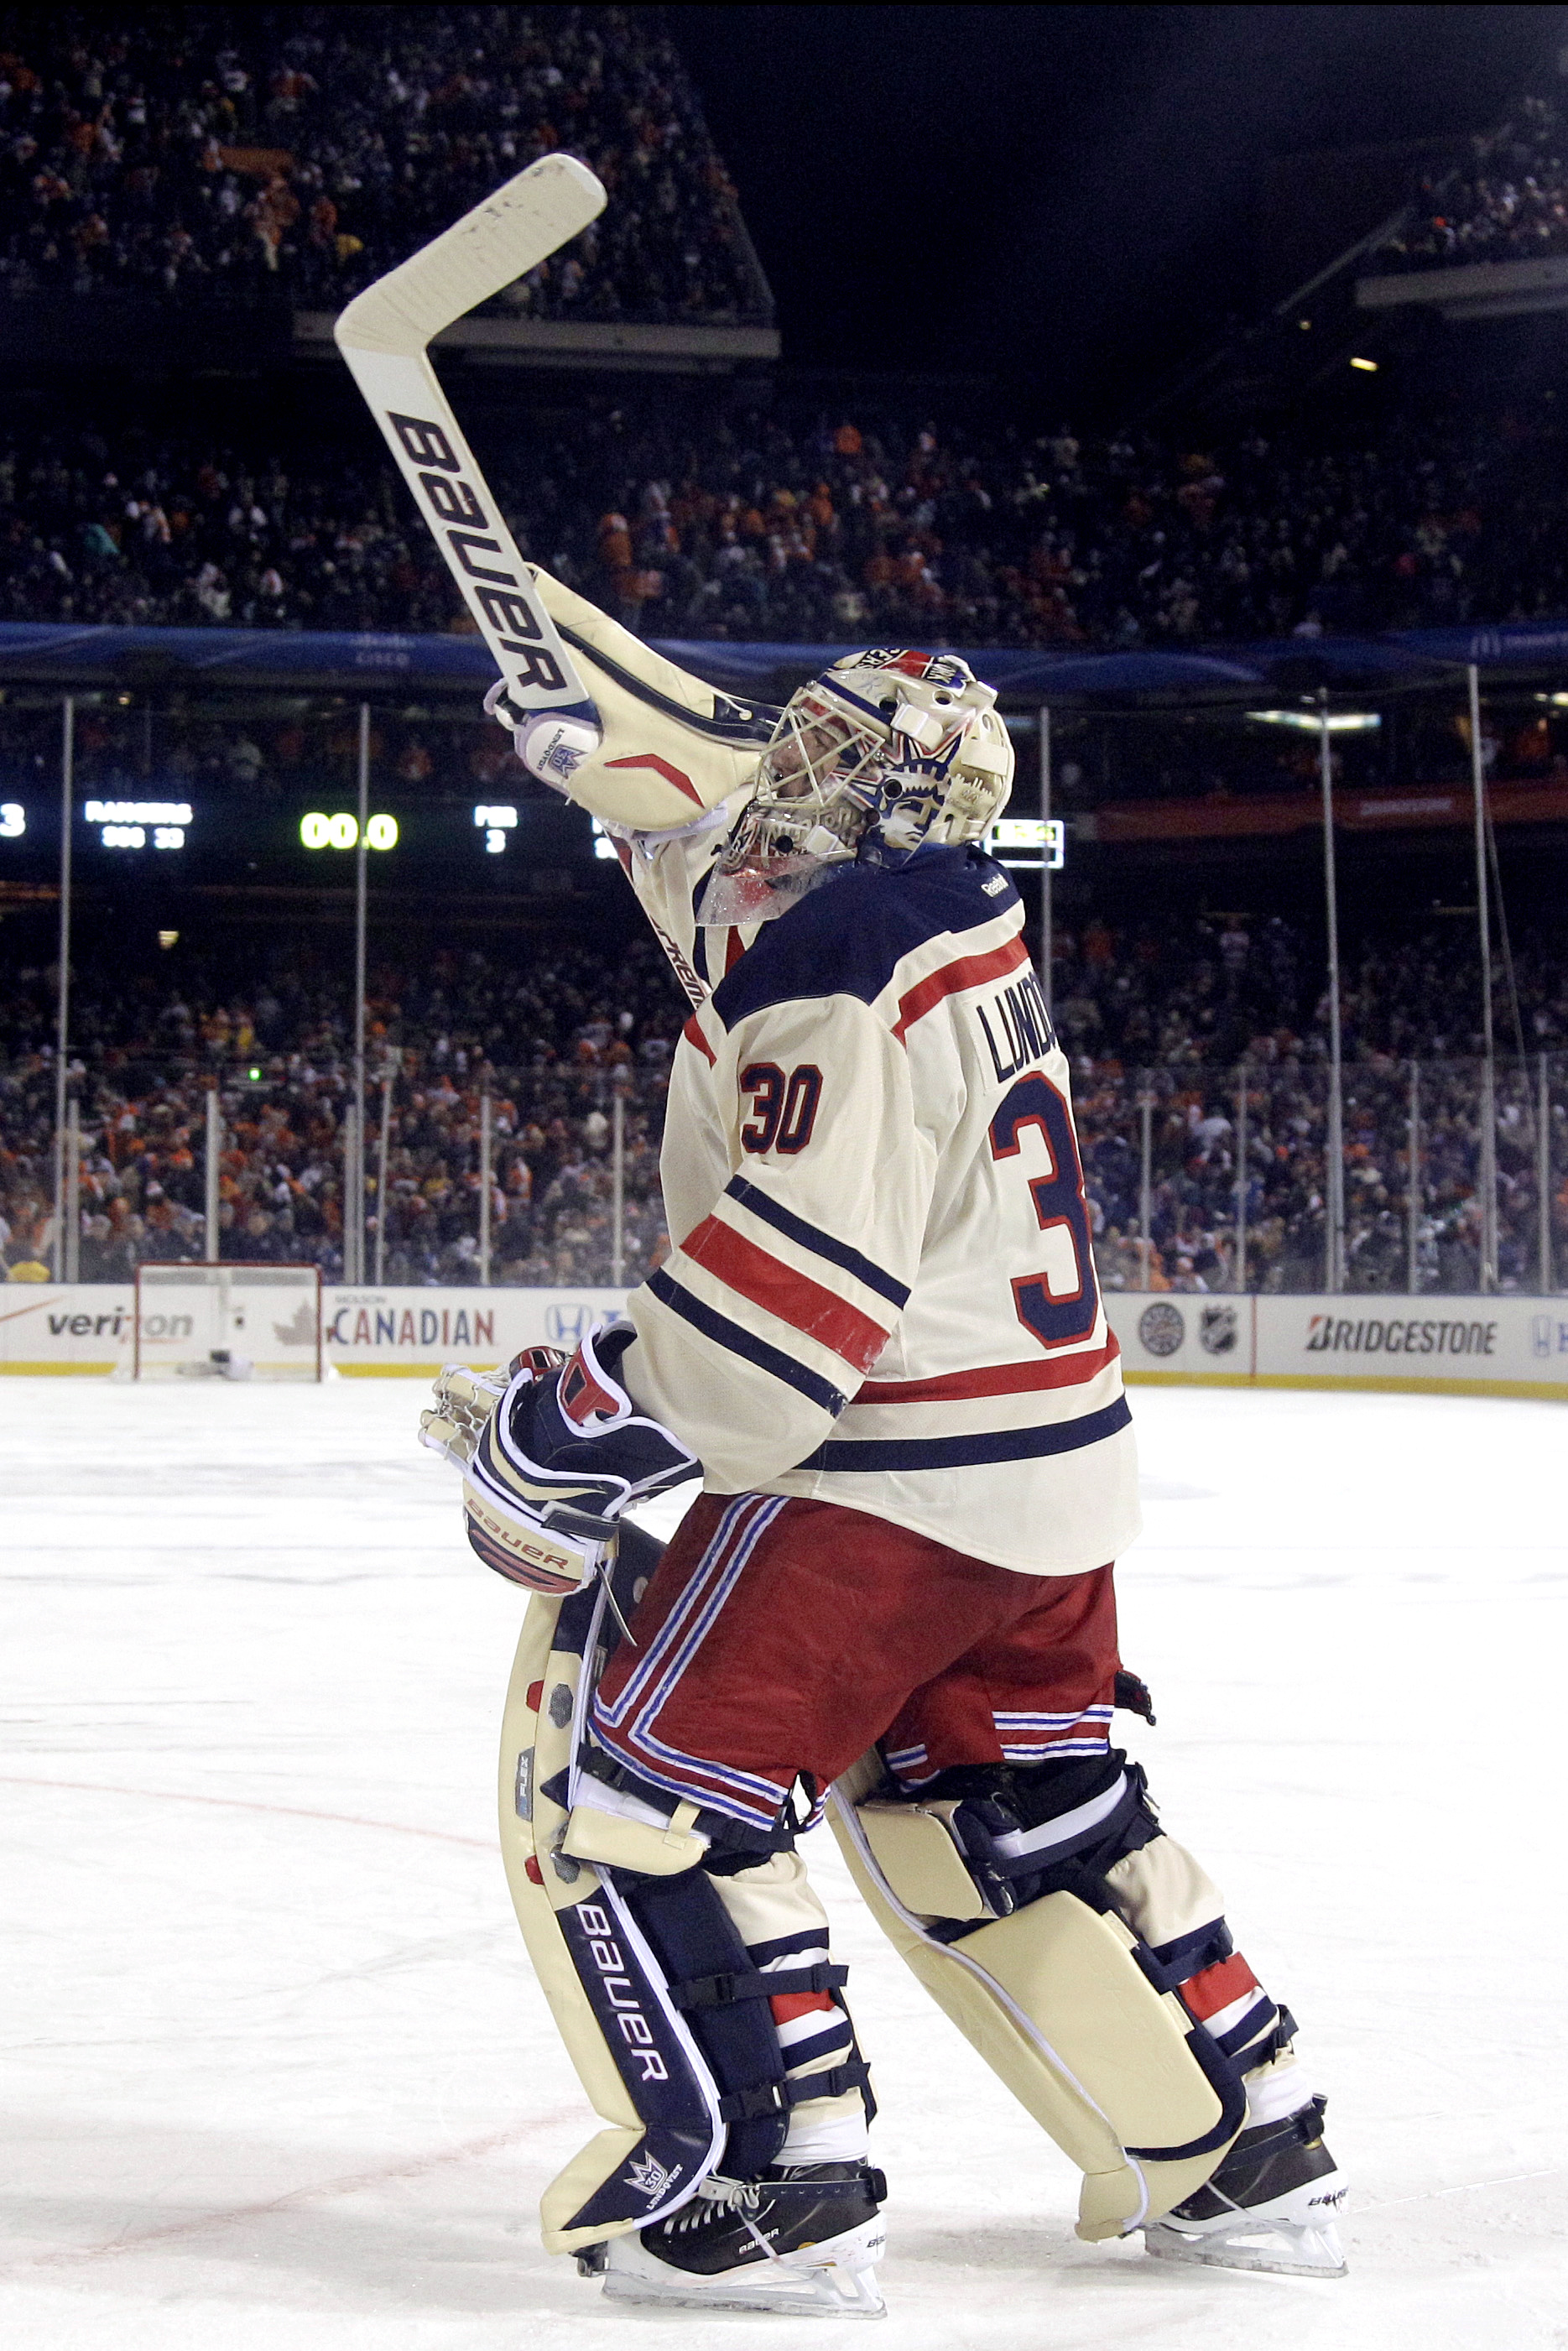 a8bb4faf0 Netminder Henrik Lundqvist helped the Rangers to a Classic win. (Associated  Press)